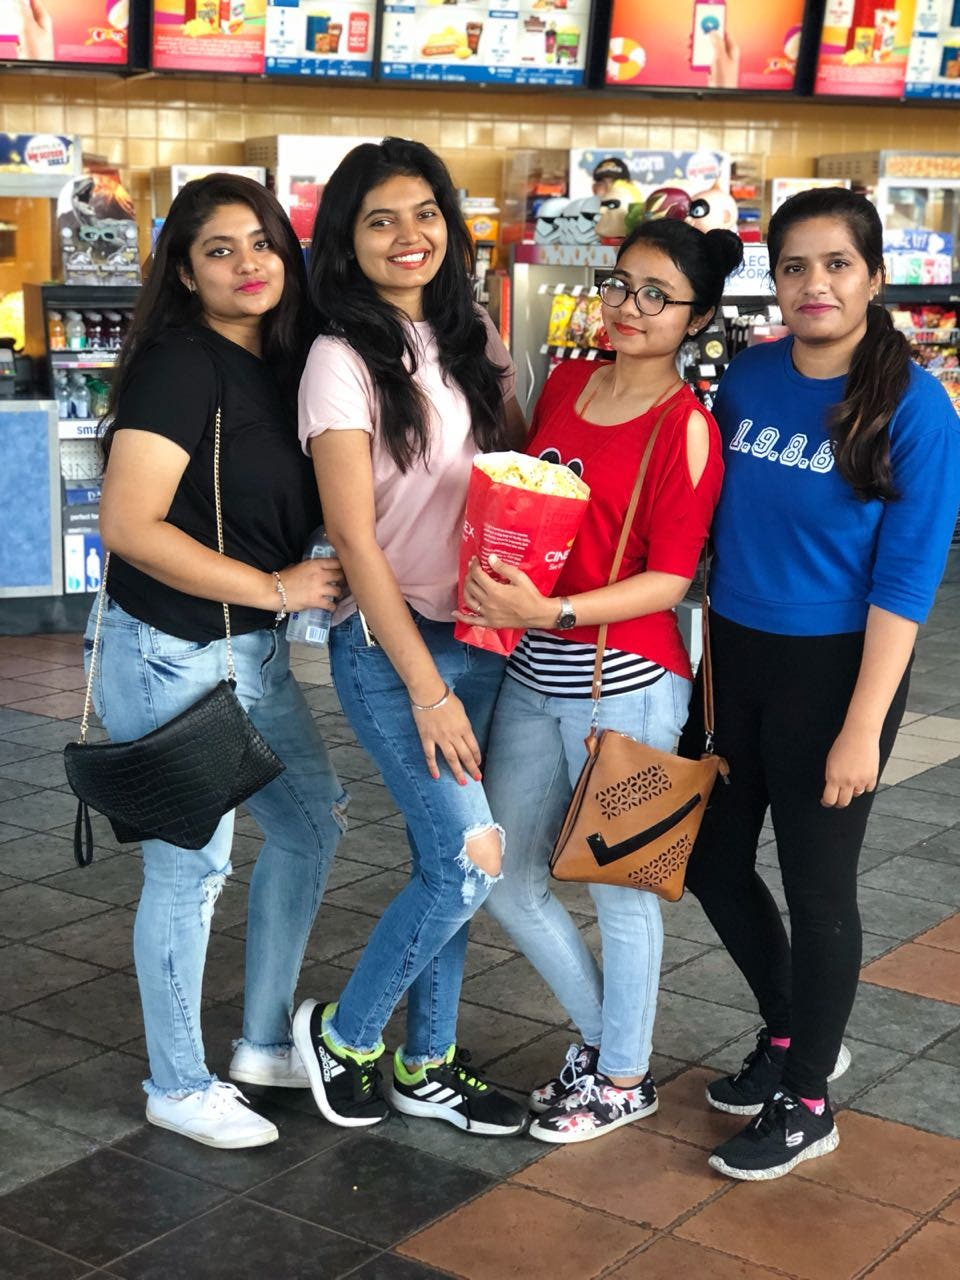 Indian students in the US say tuition fees have shot up by 15 to 20 percent. (Supplied).